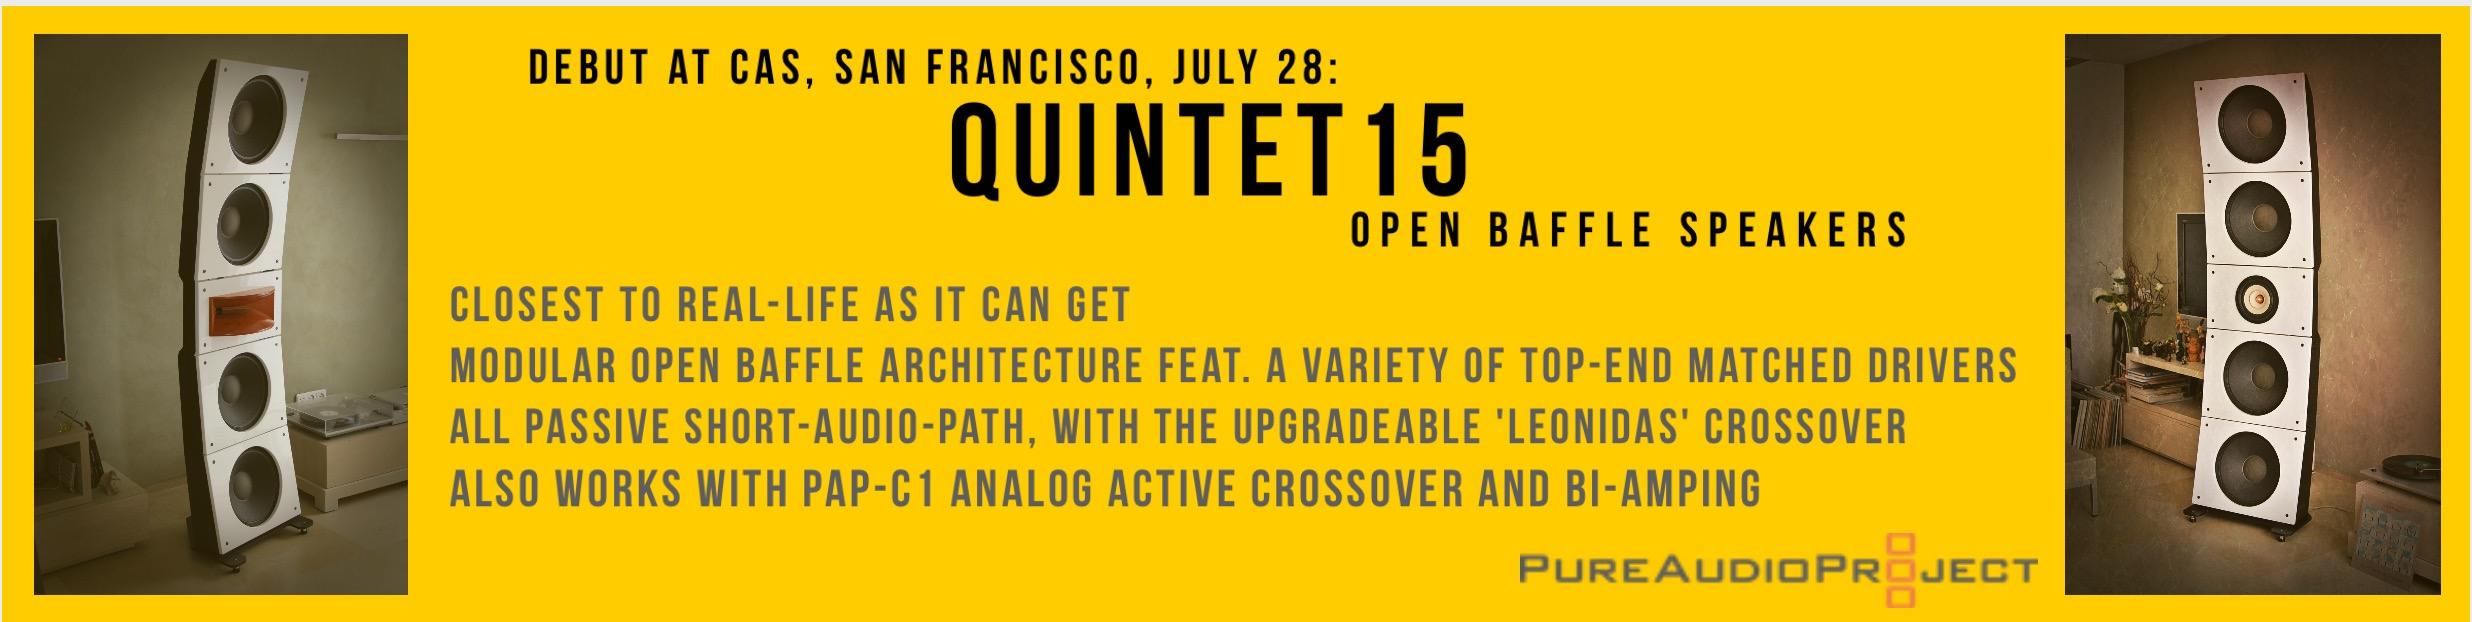 pureaudioproject quintet15 - AudioVideo2day